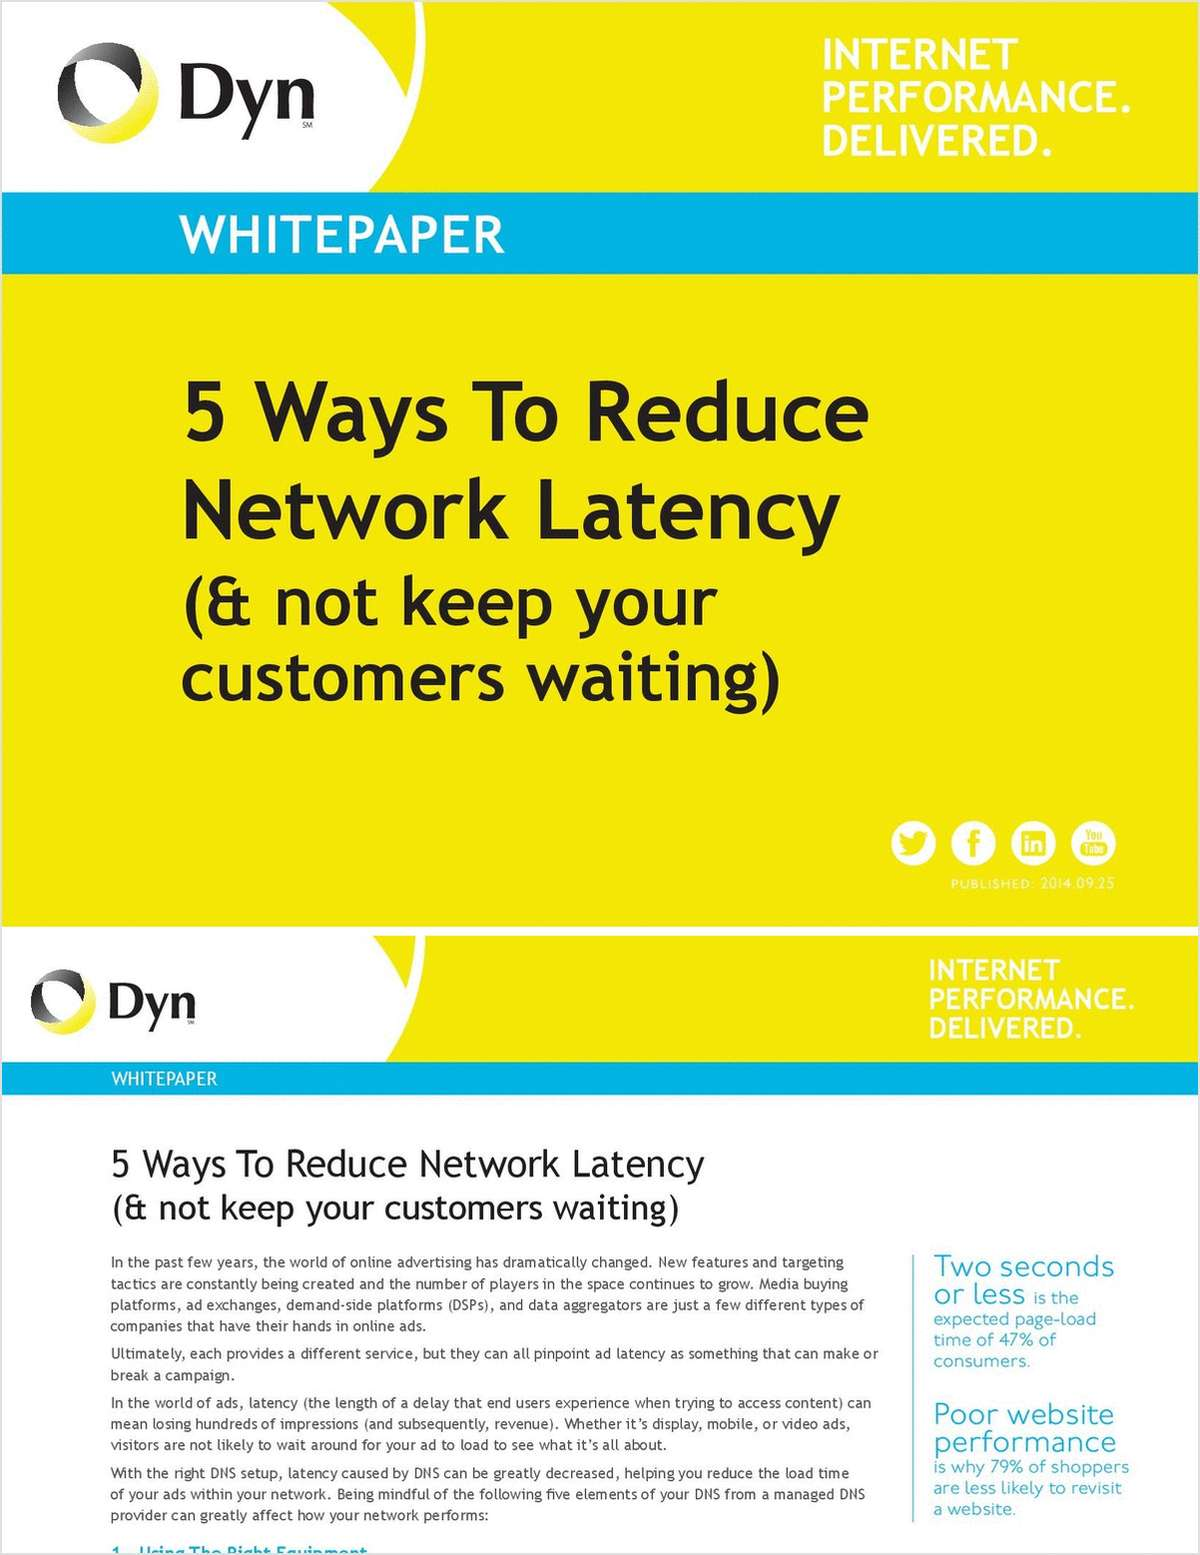 Five Ways to Reduce Network Latency